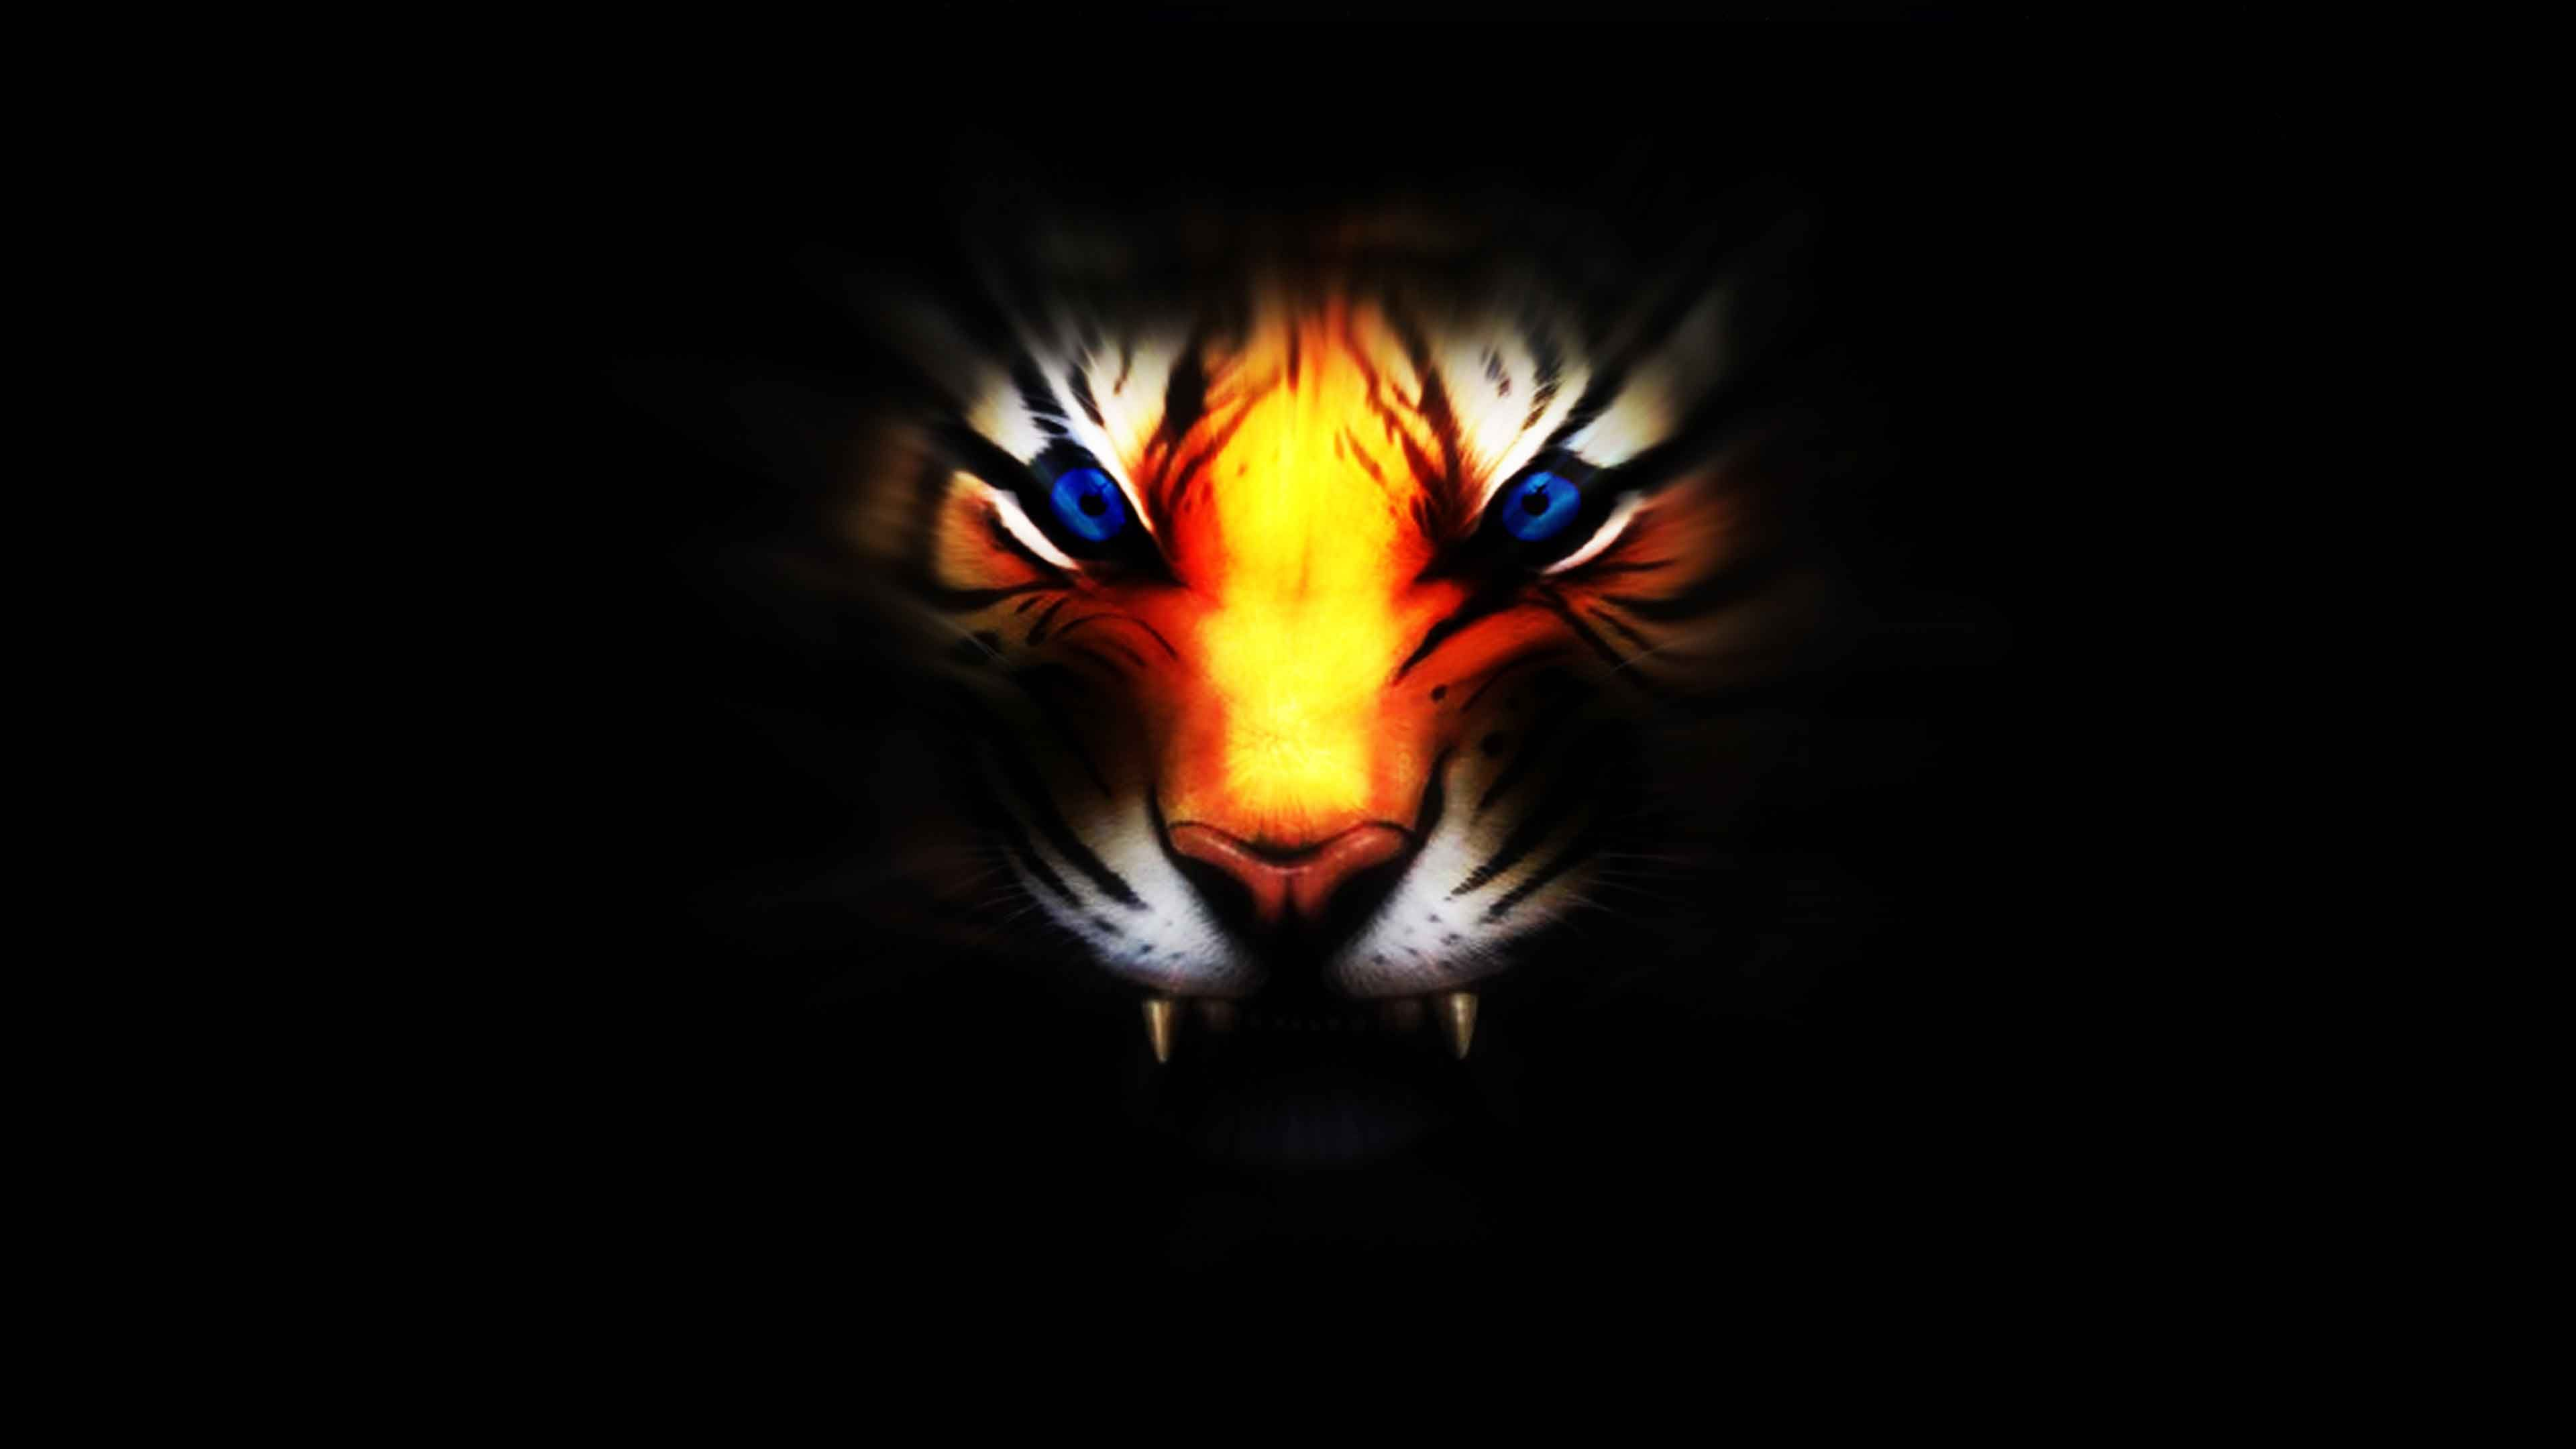 Cool 3d Tiger Wallpaper Tiger Wallpaper Animal Wallpaper Best